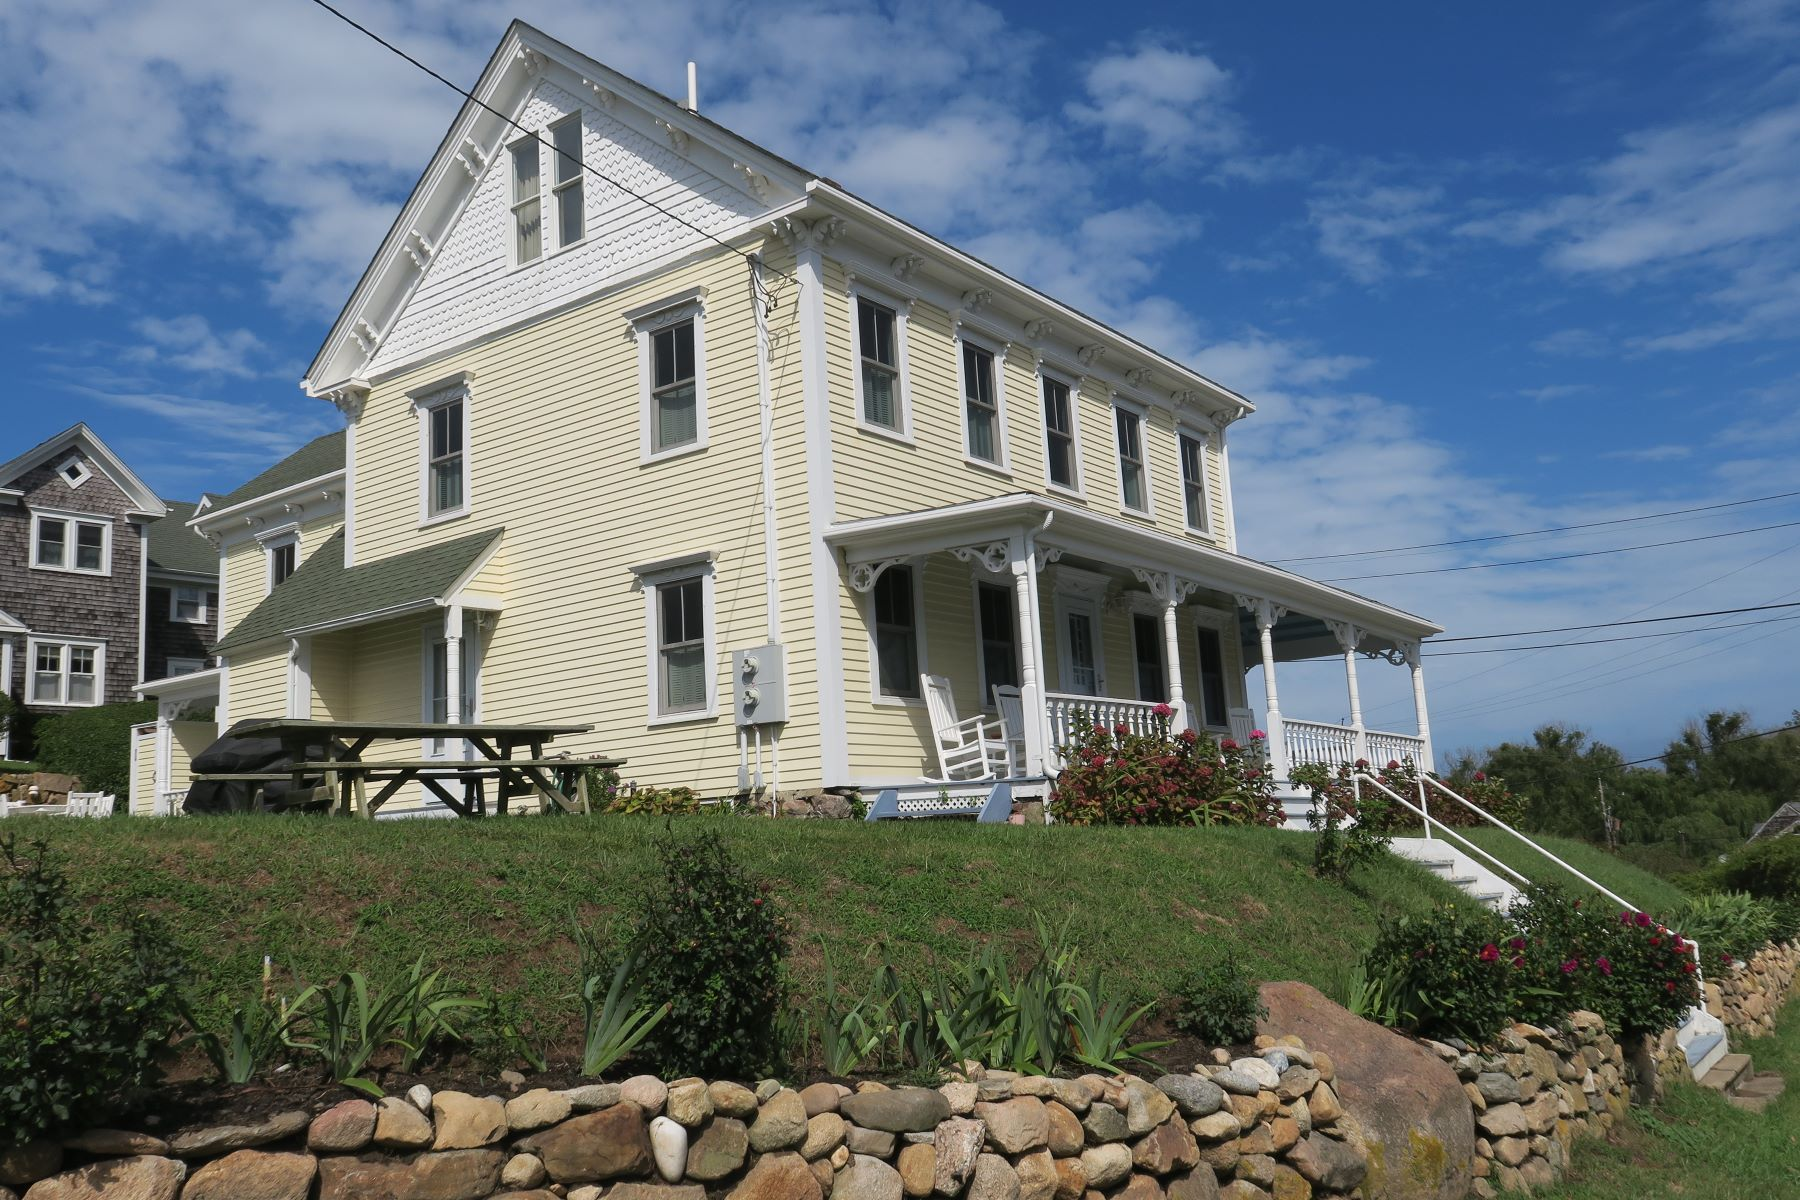 Condominiums for Sale at Calico Hill Condominum 472 Old Town Road Block Island, Rhode Island 02807 United States